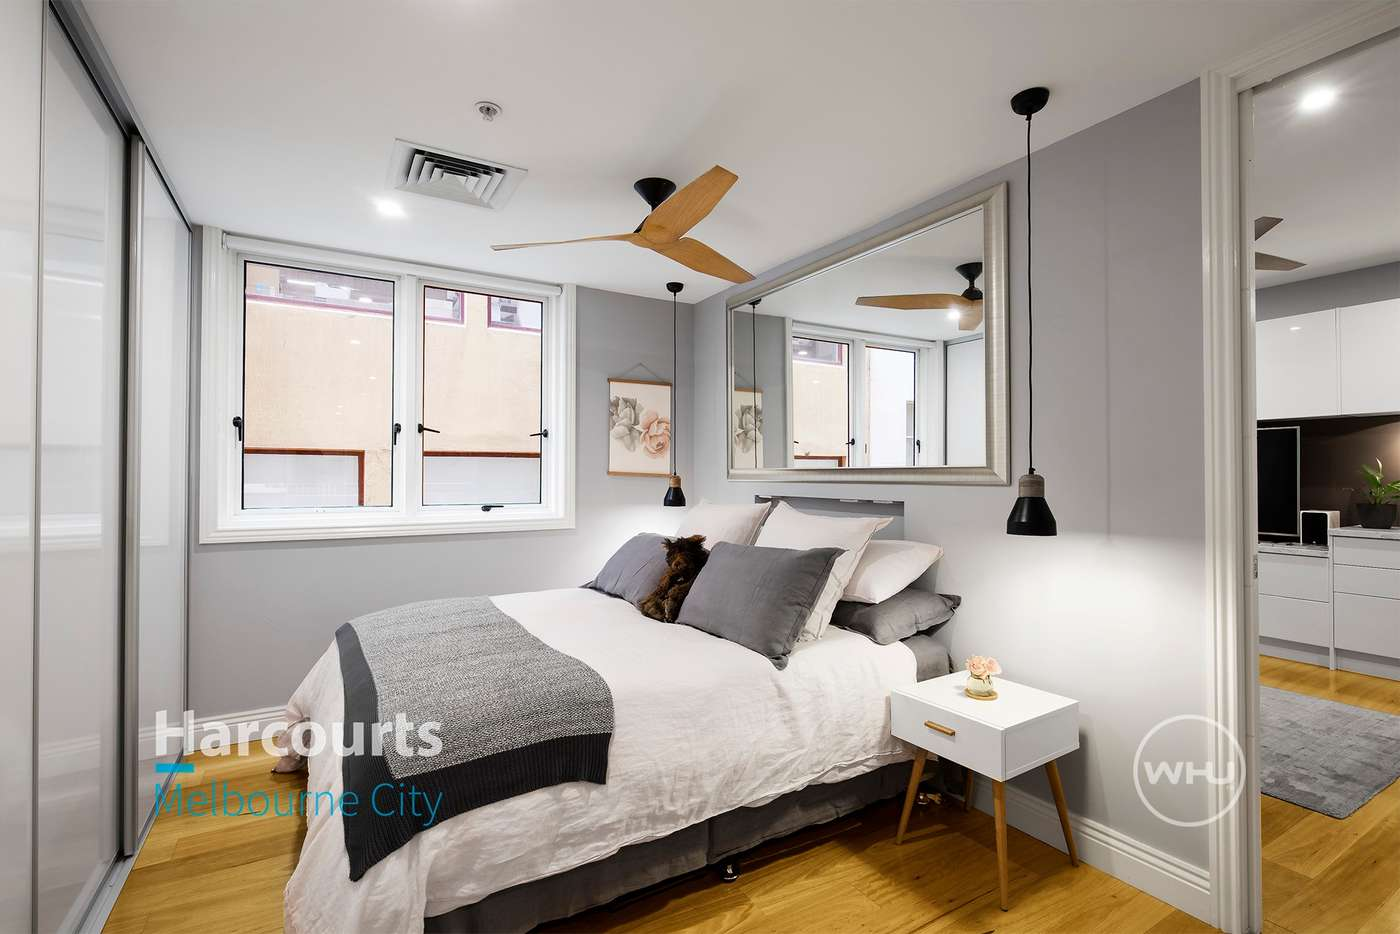 Fifth view of Homely apartment listing, P23/394 Collins Street, Melbourne VIC 3000